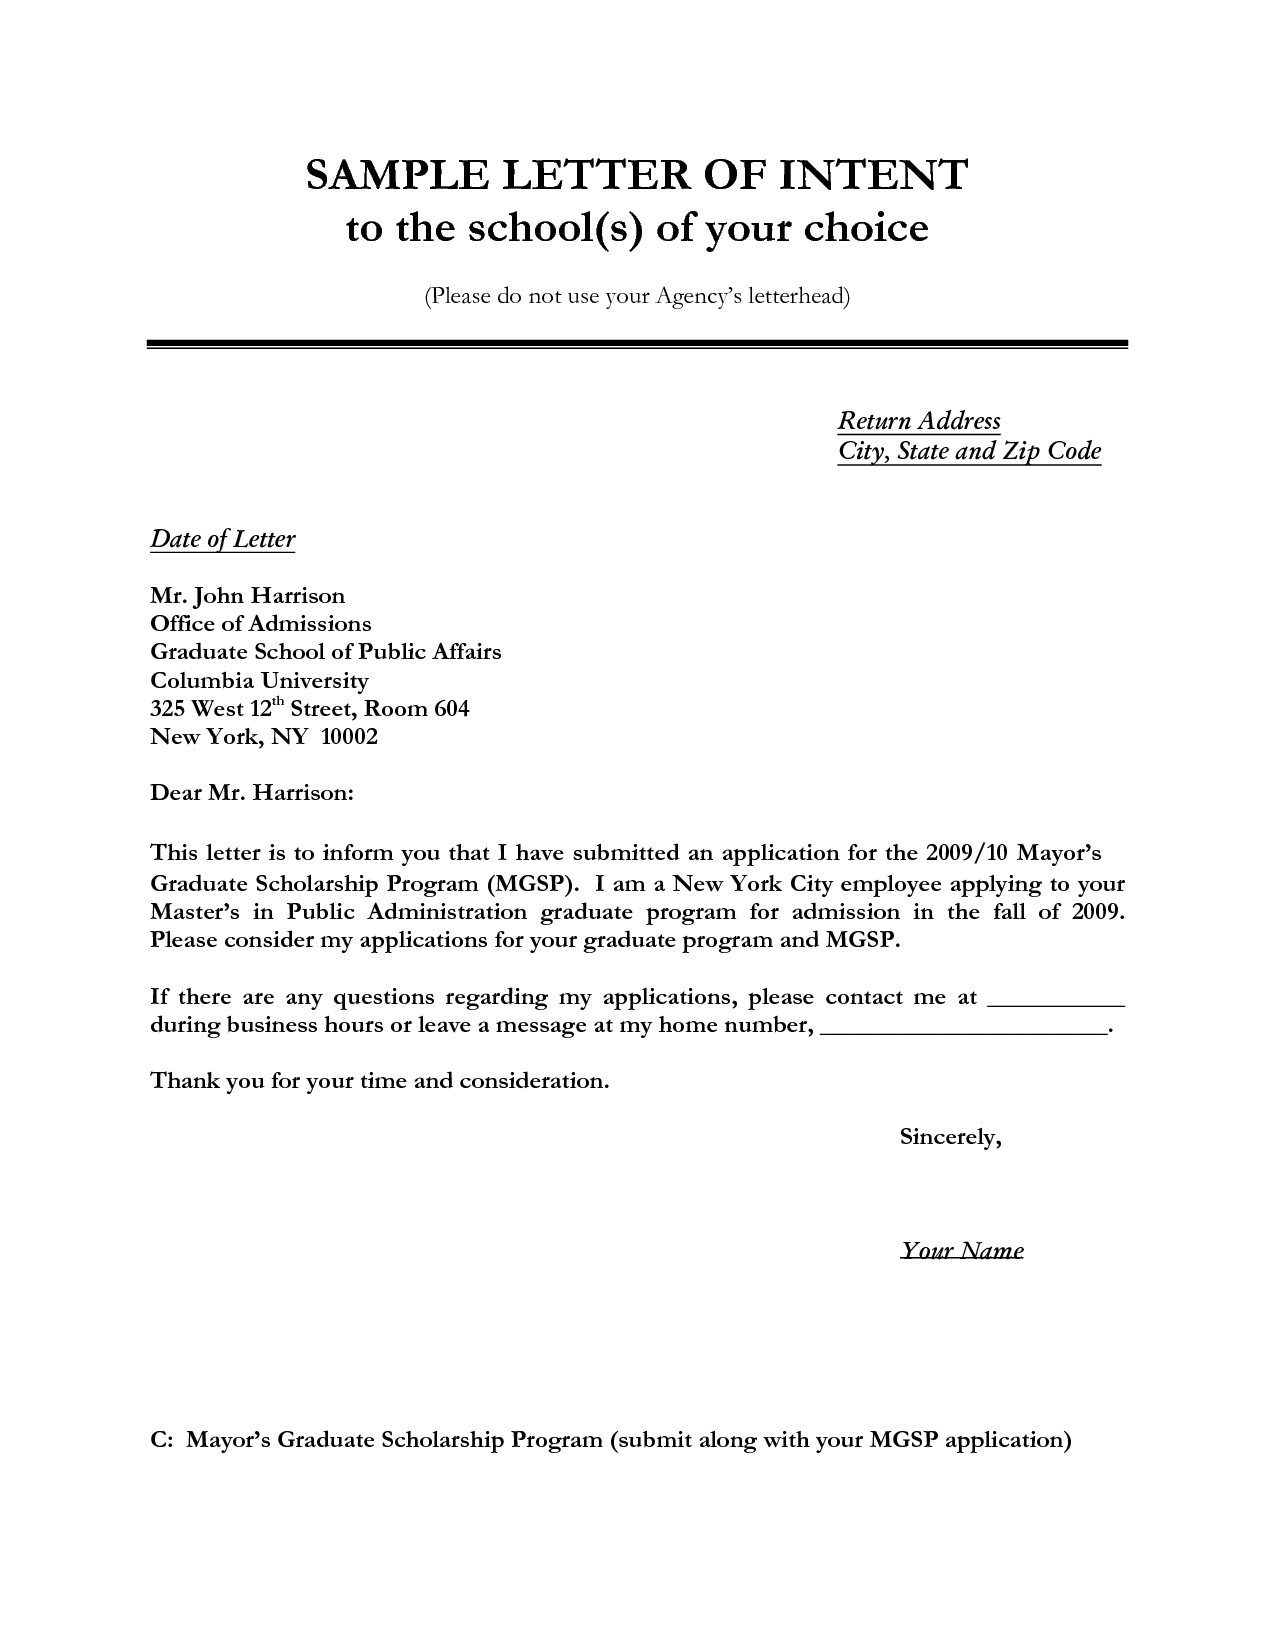 Real Estate Letter Of Intent Template - Letter Of Intent Sample